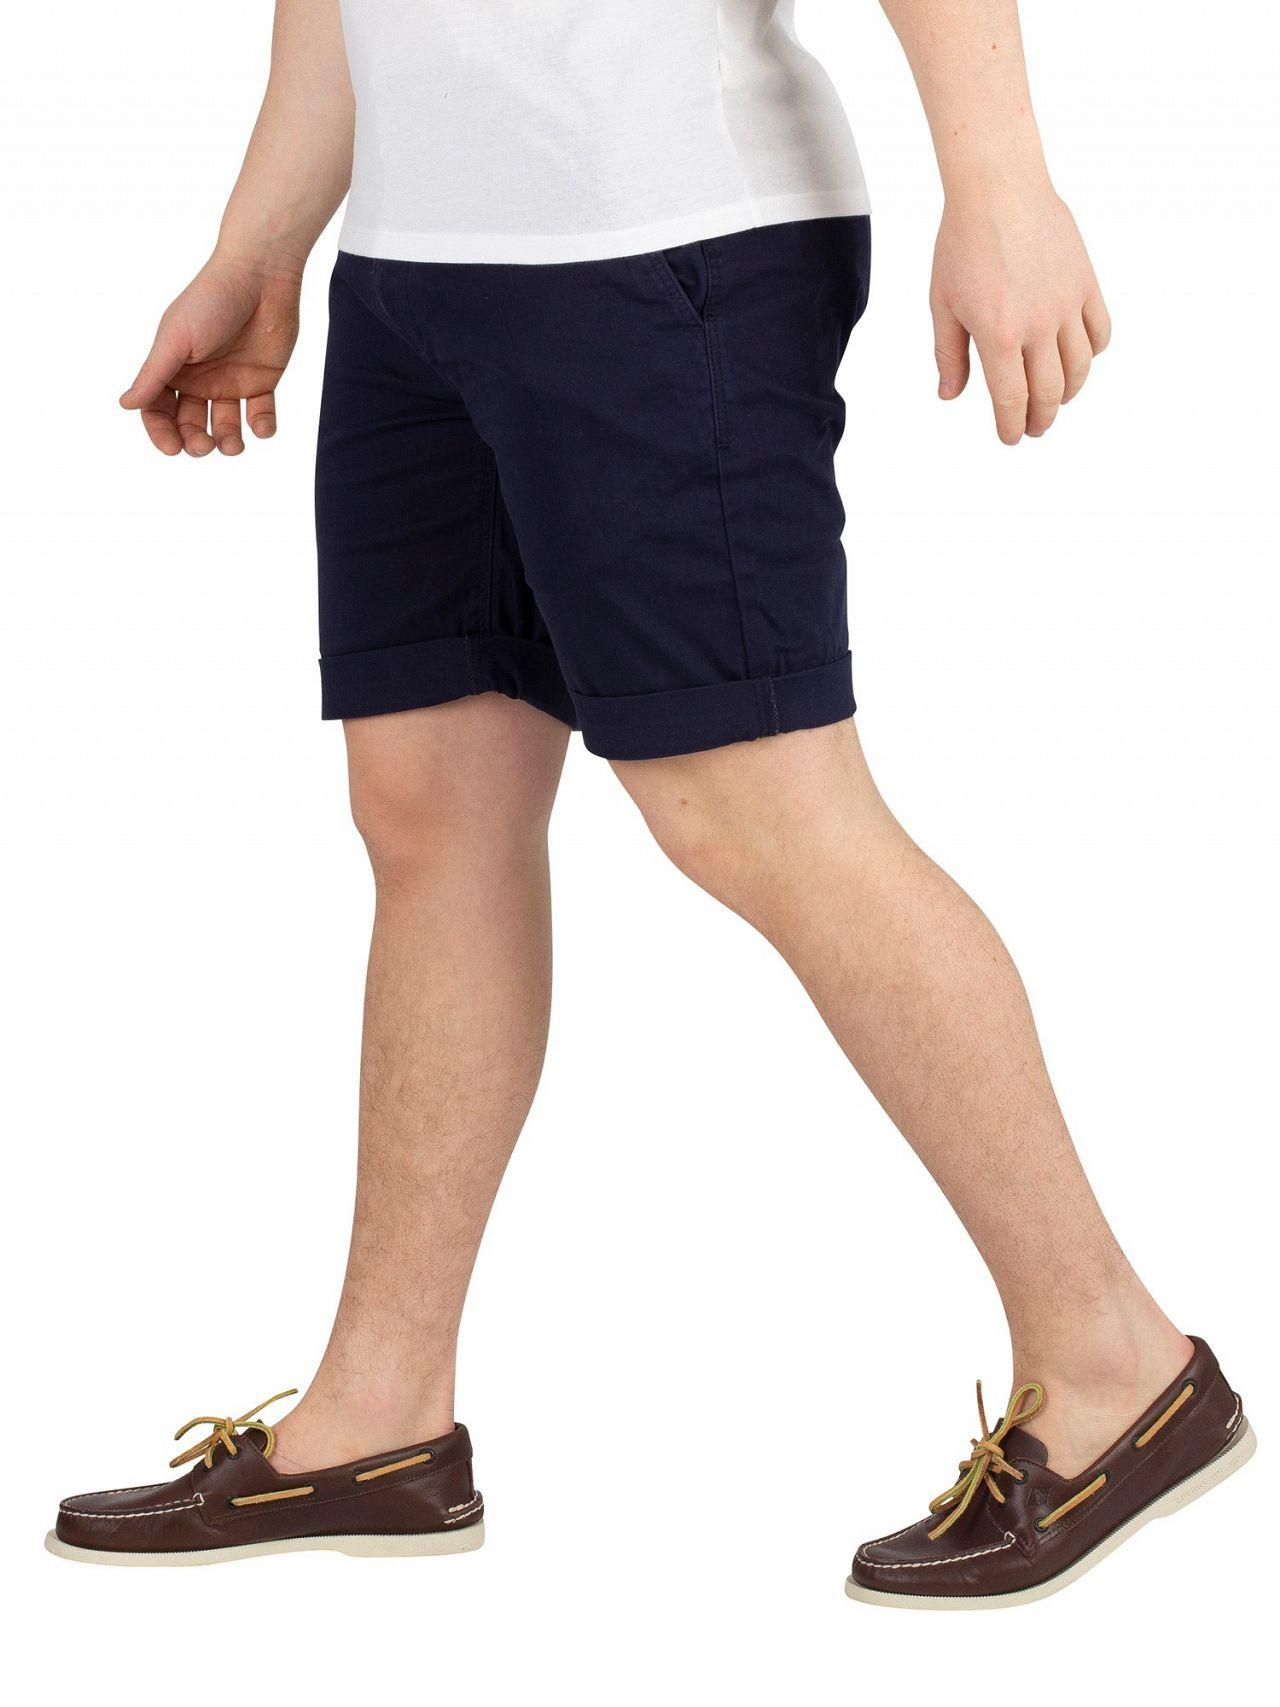 4d3389ea Tommy Hilfiger Black Iris Navy Essential Chino Shorts in Black for Men -  Lyst